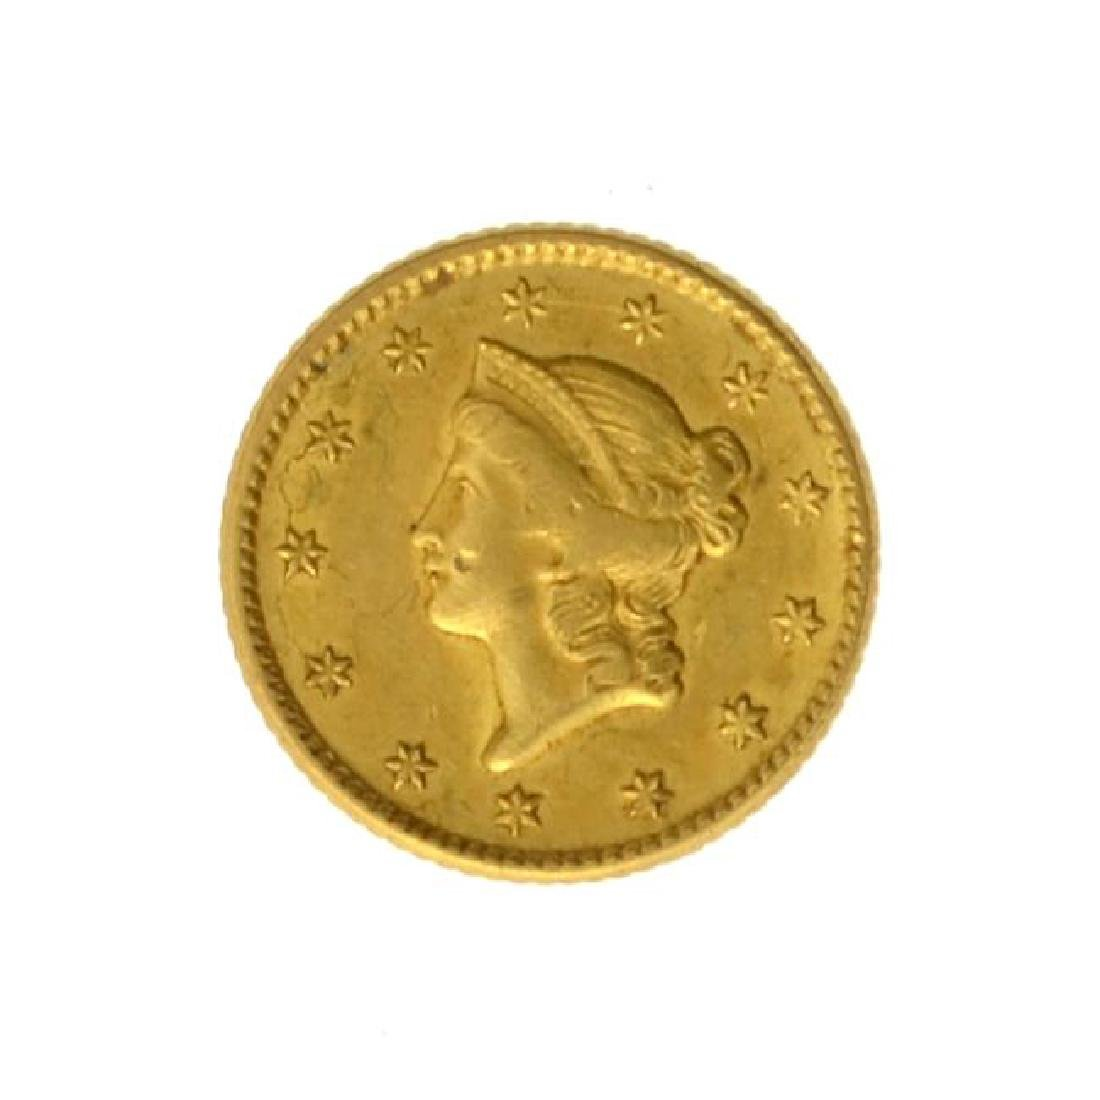 1851 $1 U.S. Liberty Head Gold Coin - Great Investment